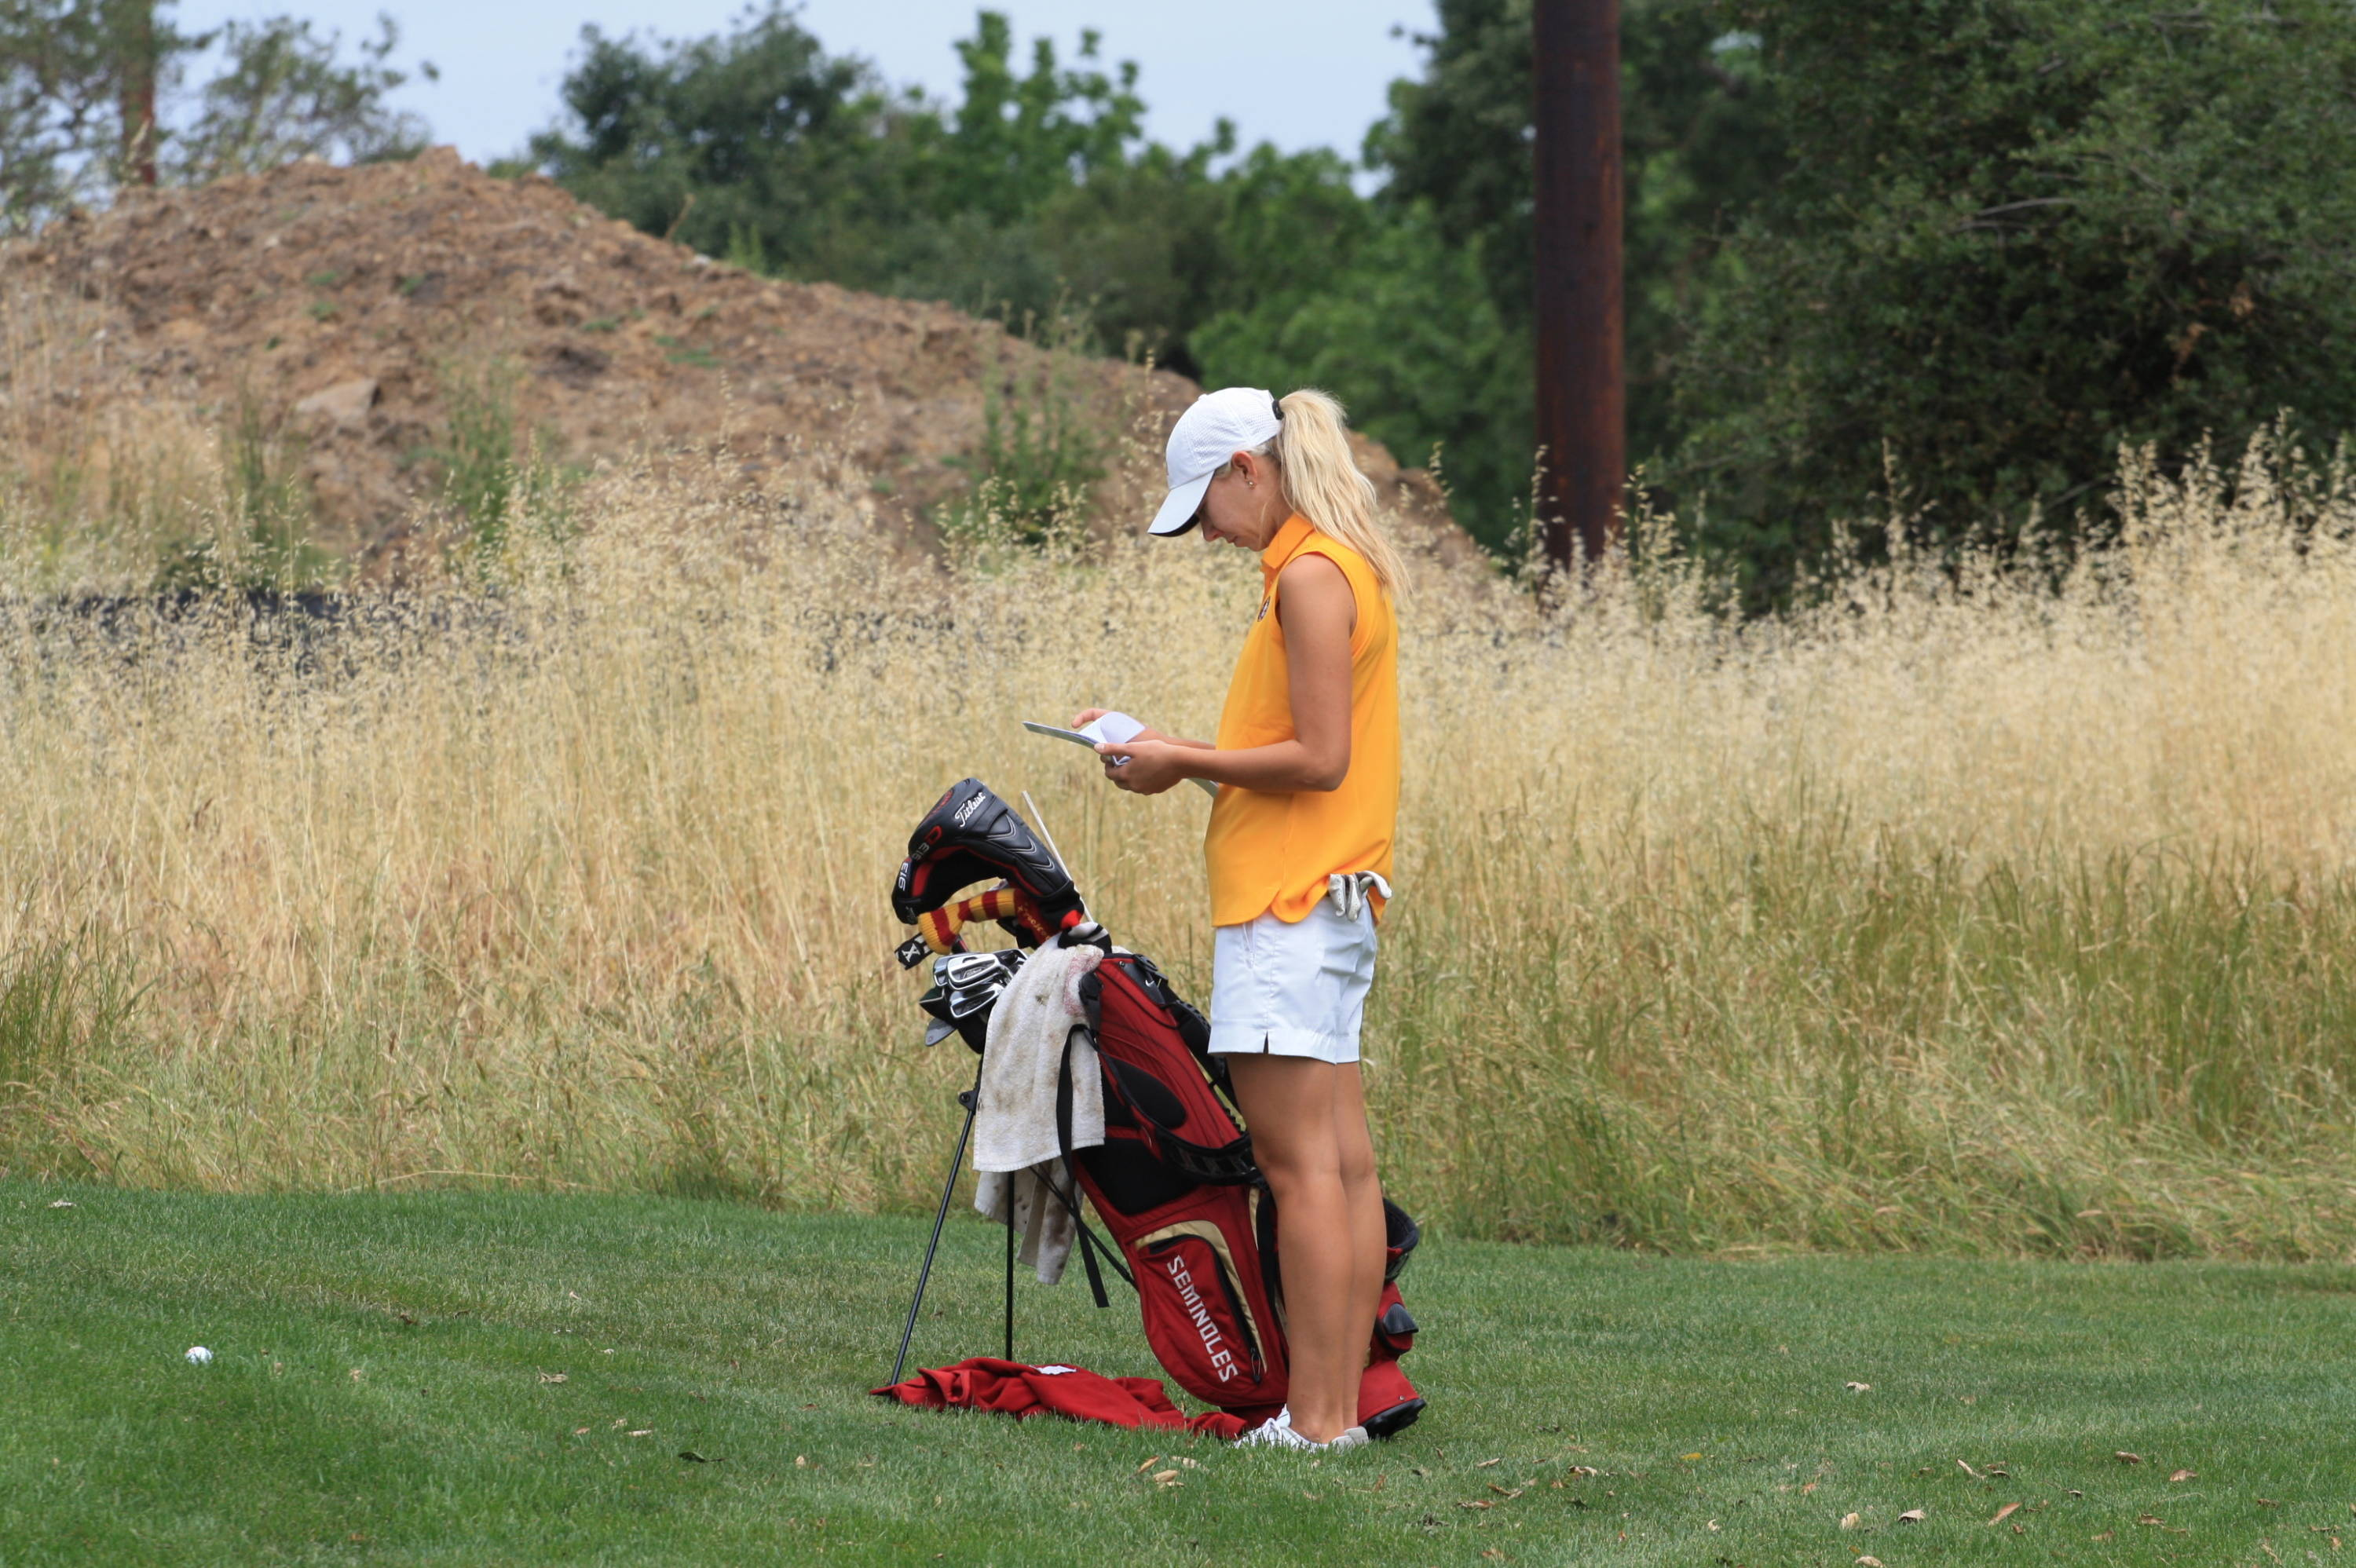 Carlton Kuhlo -- 2013 NCAA West Regional